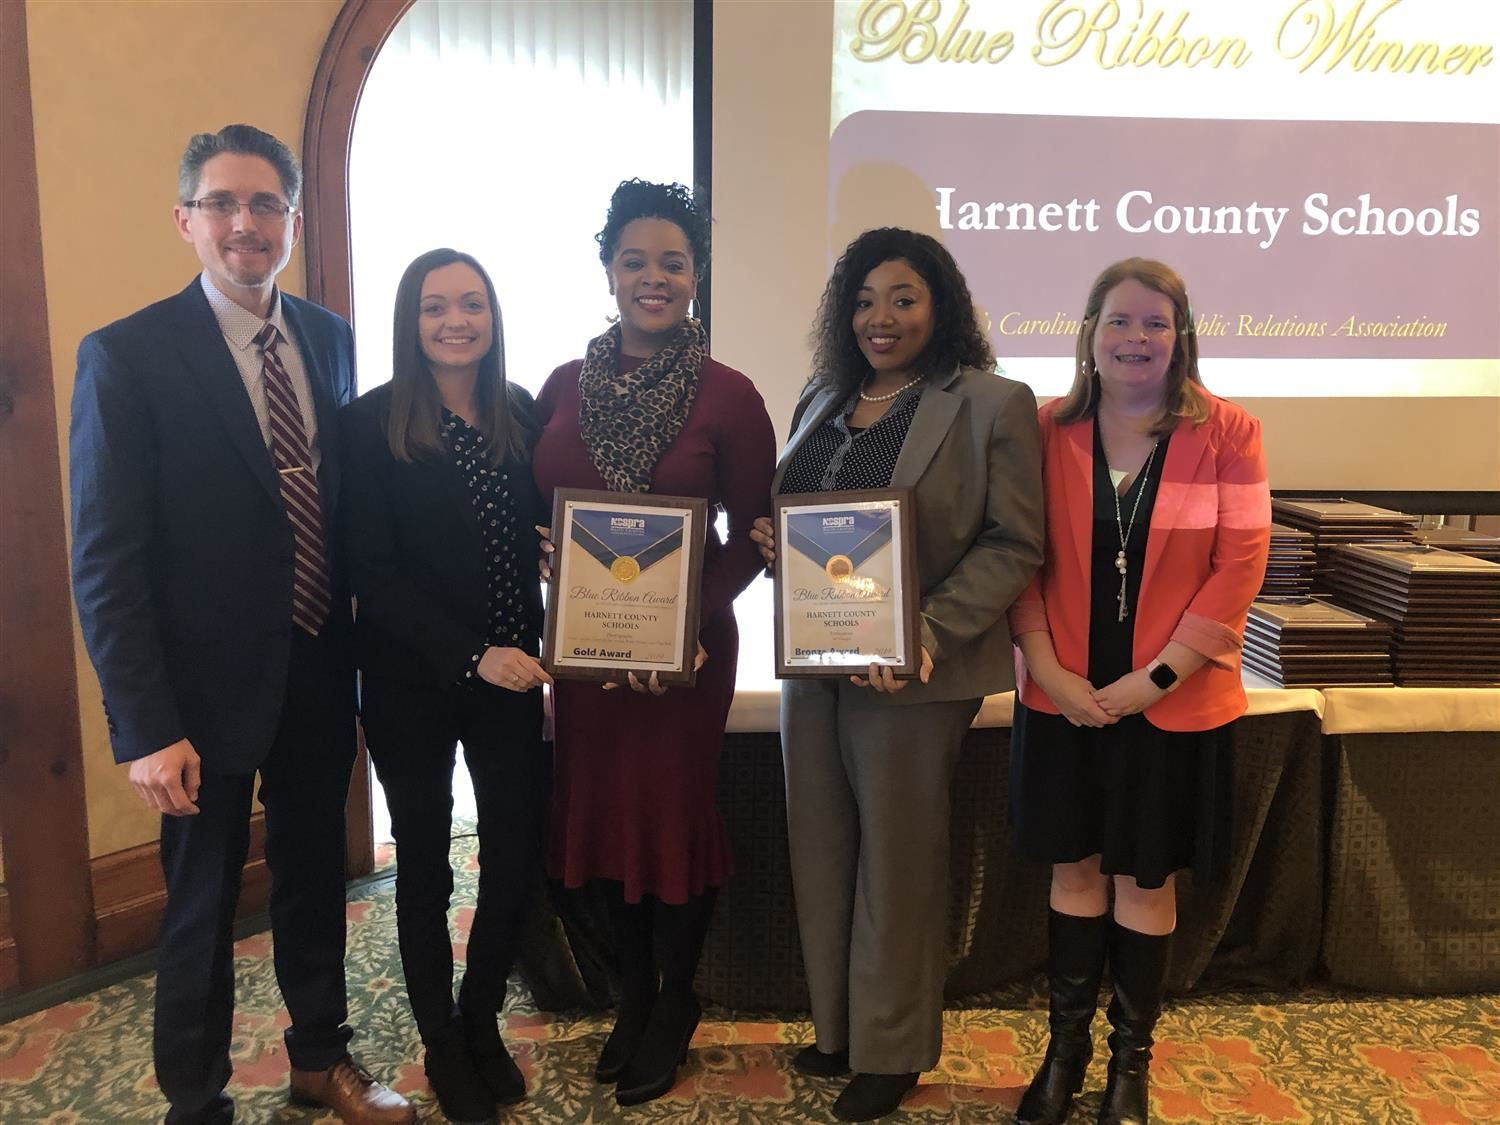 HARNETT COUNTY SCHOOLS WINS STATE AWARDS FOR EFFECTIVE SCHOOL COMMUNICATIONS AND PUBLIC RELATIONS